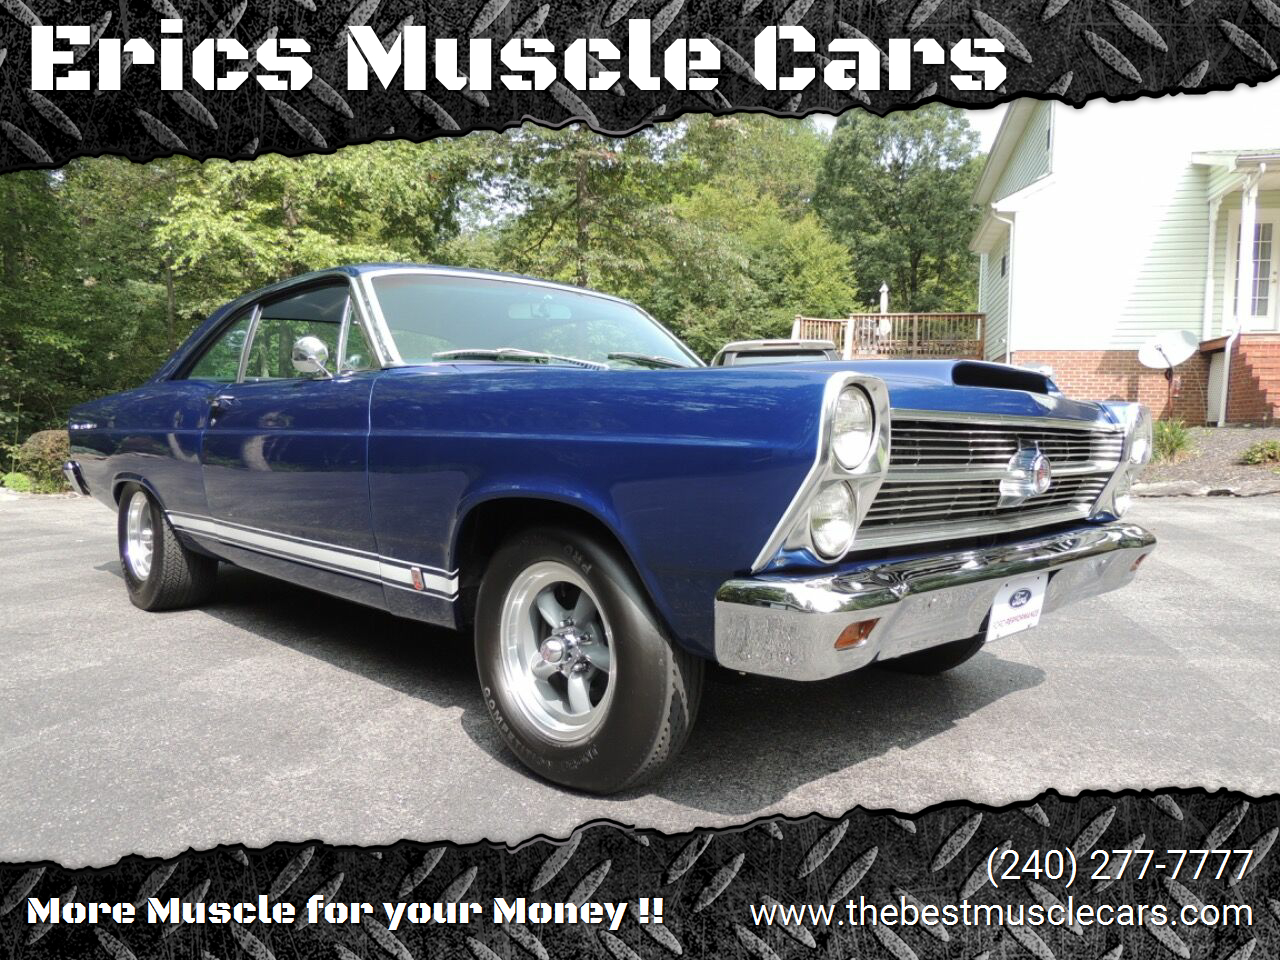 1966 Ford Fairlane GTA